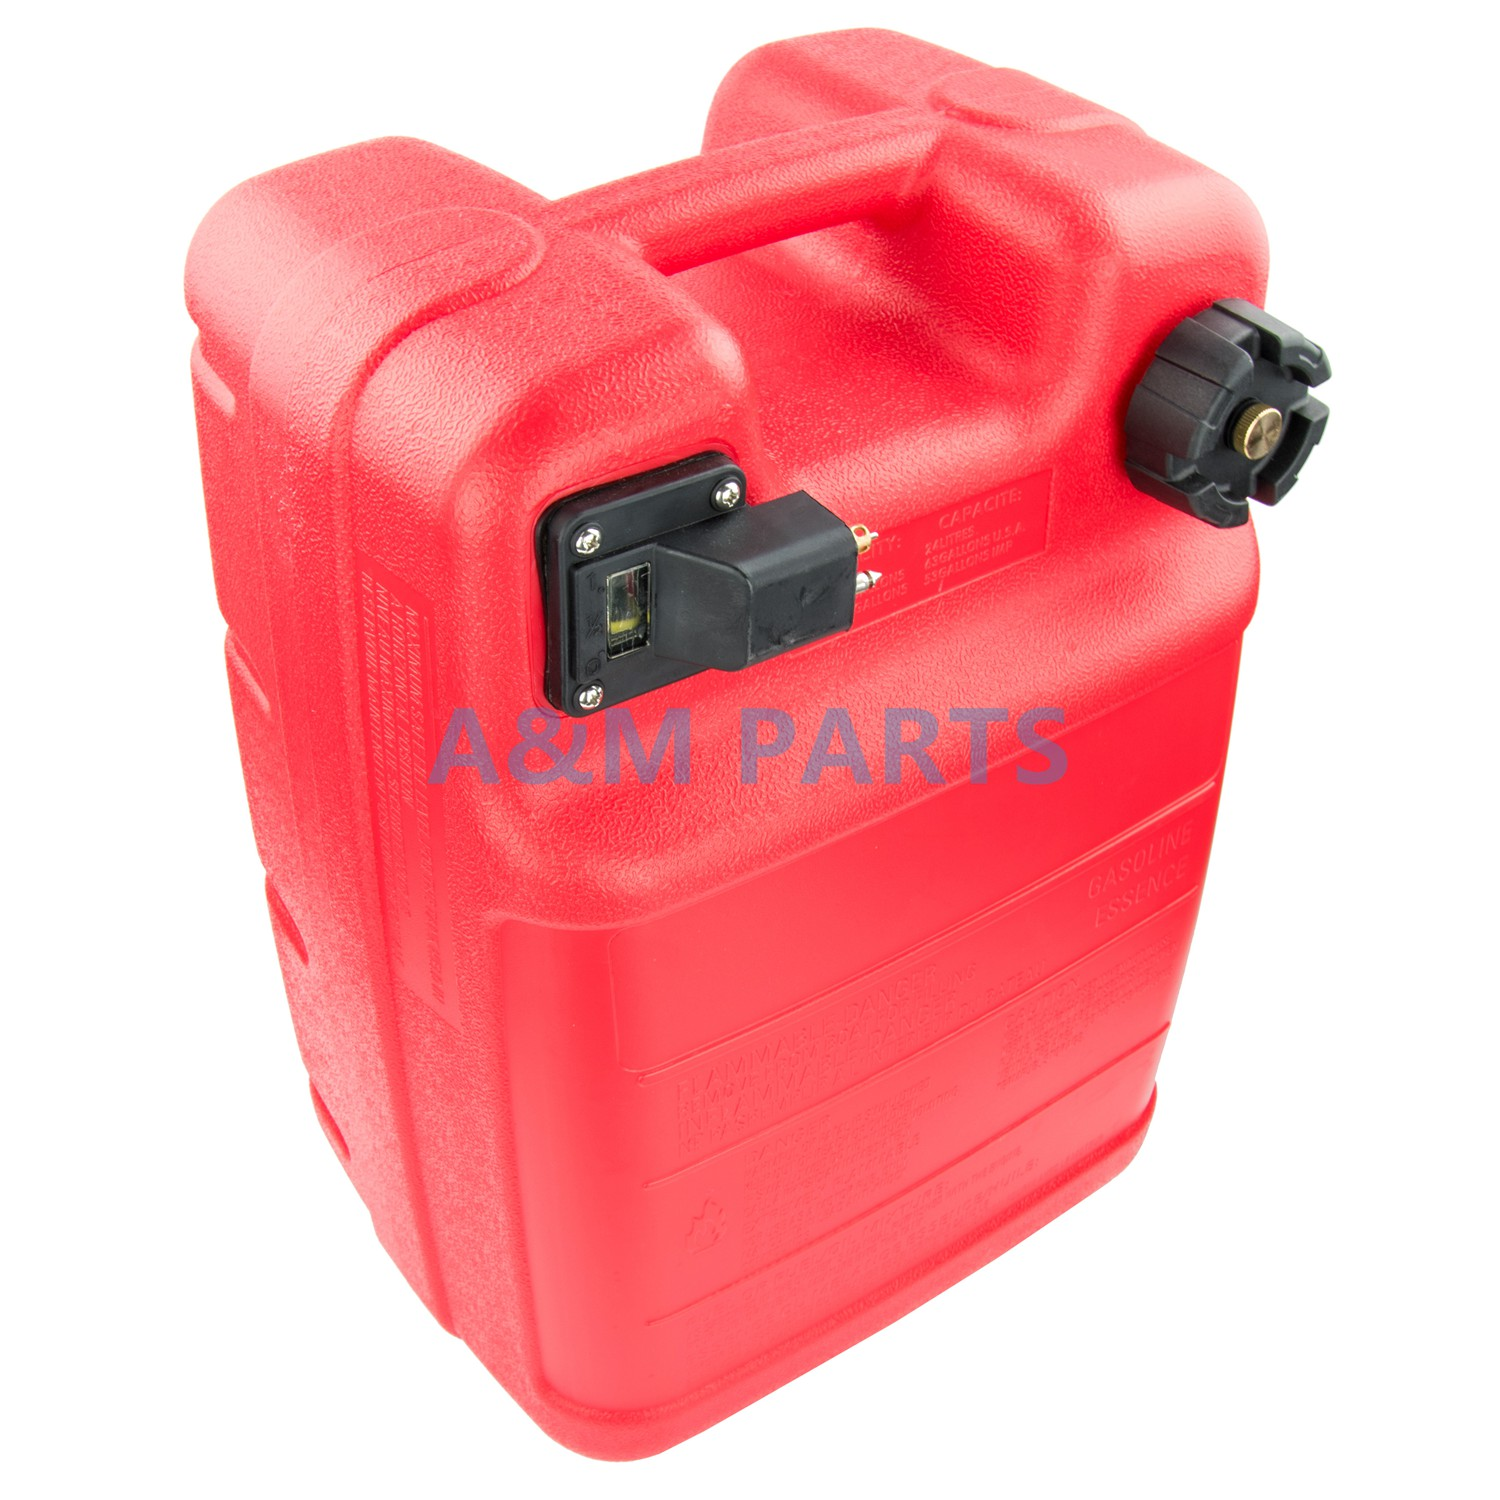 Portable Boat Engine Fuel Tank 24L Marine Outboard Fuel Tank With Connector pe fuel tank